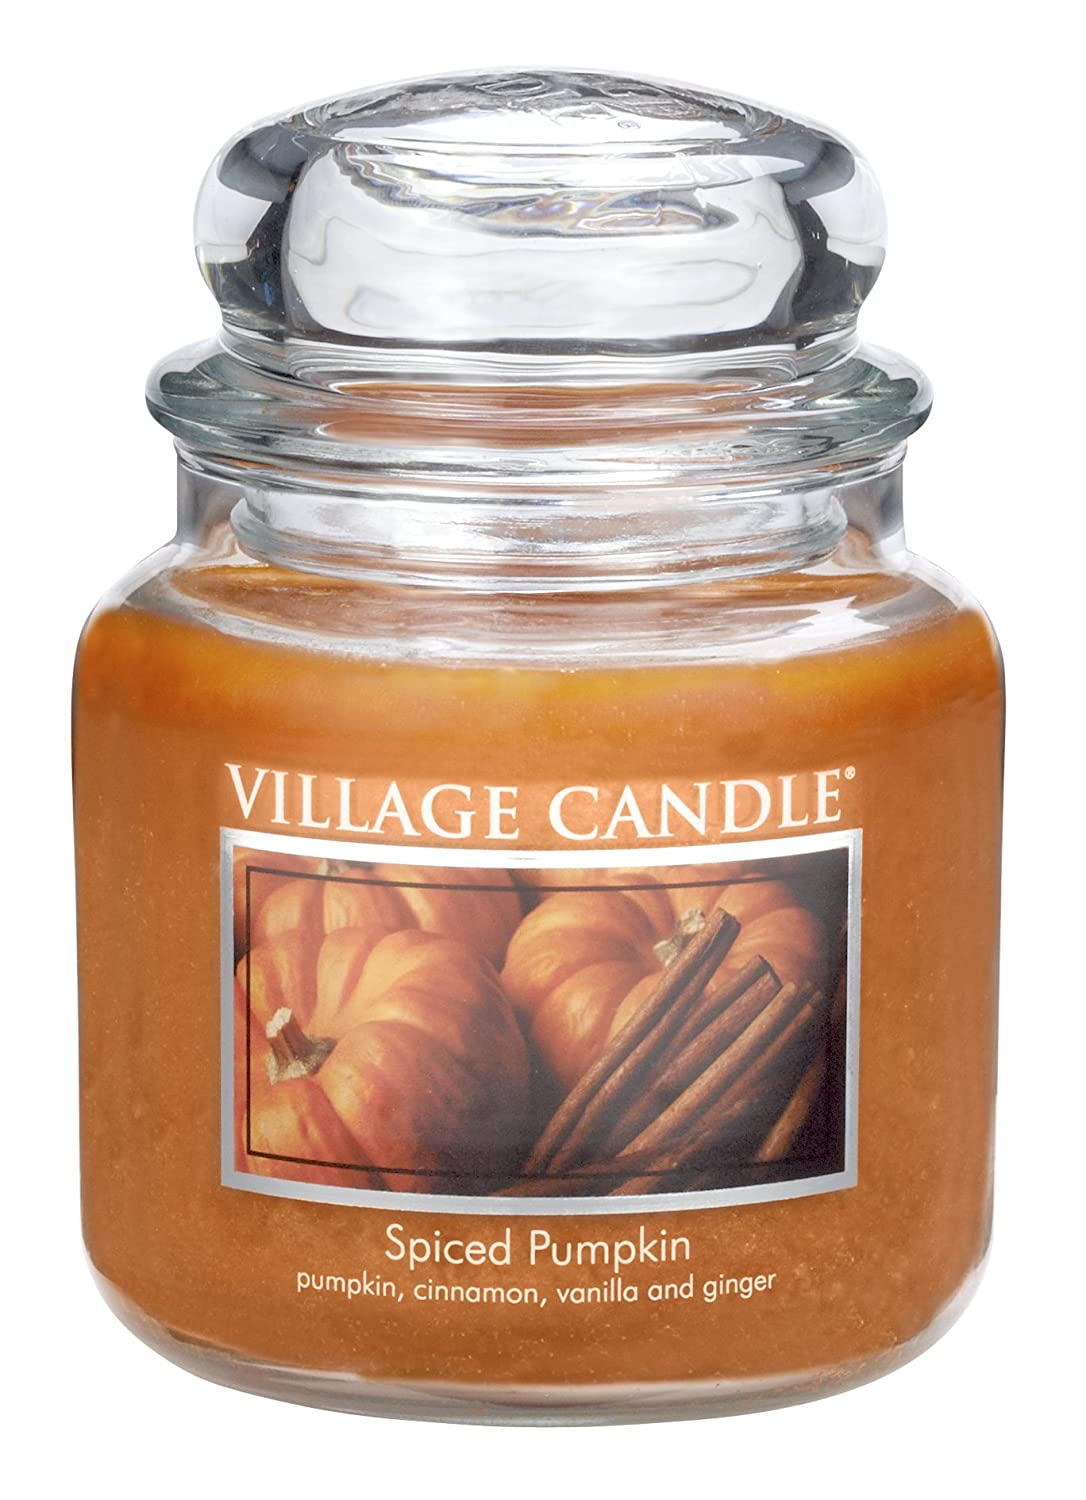 Village Candle Spiced Pumpkin 11 oz Glass Jar Scented Candle, Small Inc. 106011316